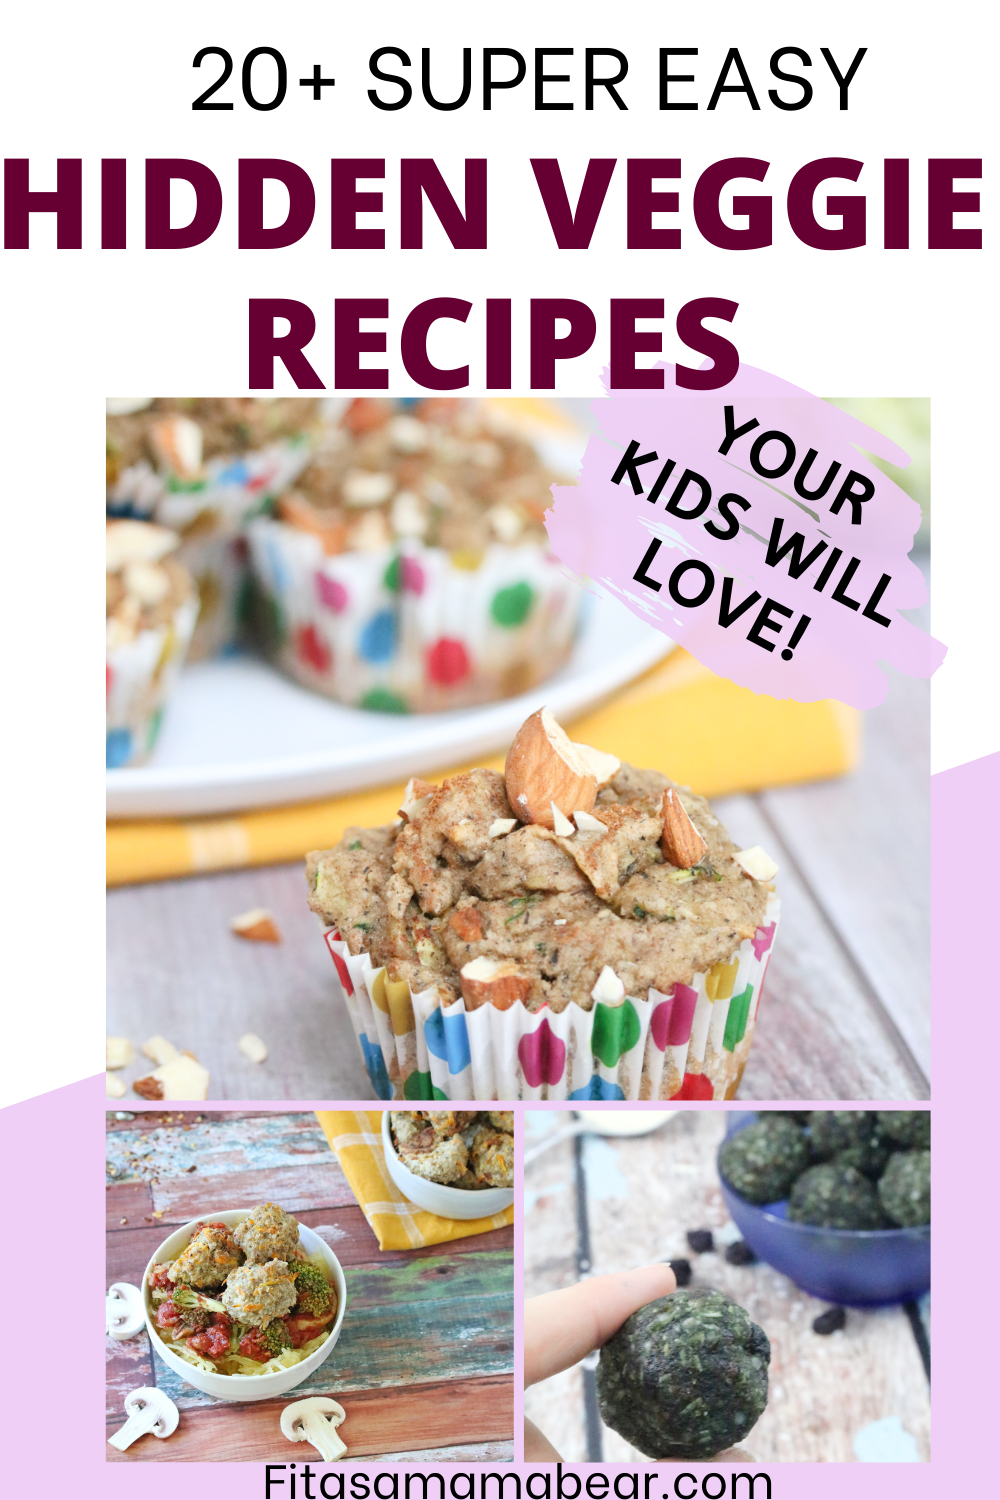 Pinterest image with text: multiple images of recipes with hidden veggies